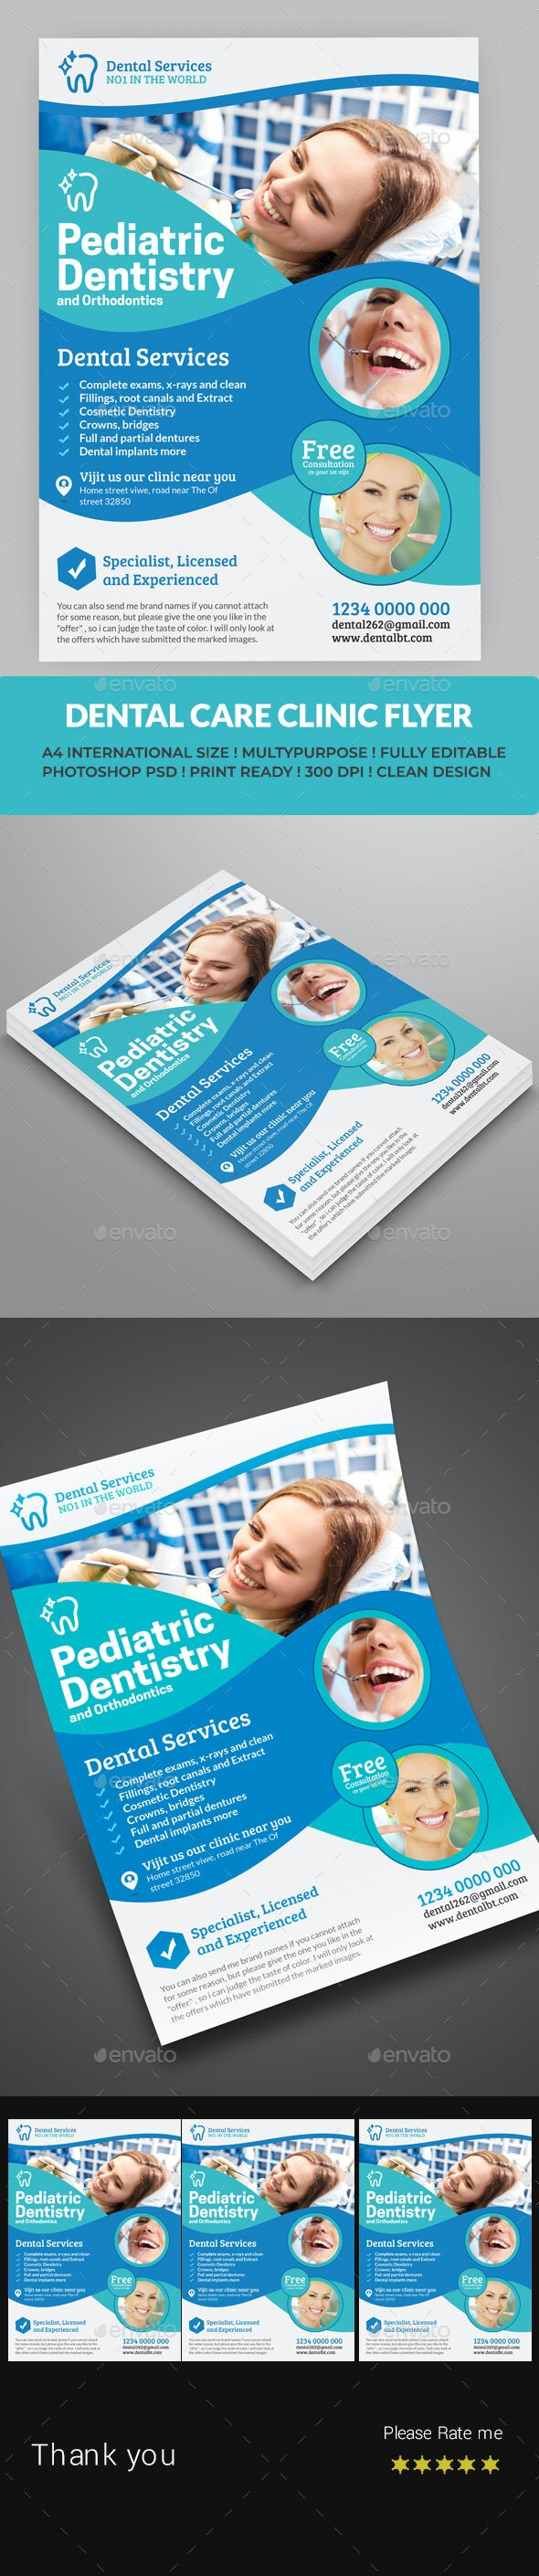 Dental Care Health Medical Flyer Template - Commerce Flyers